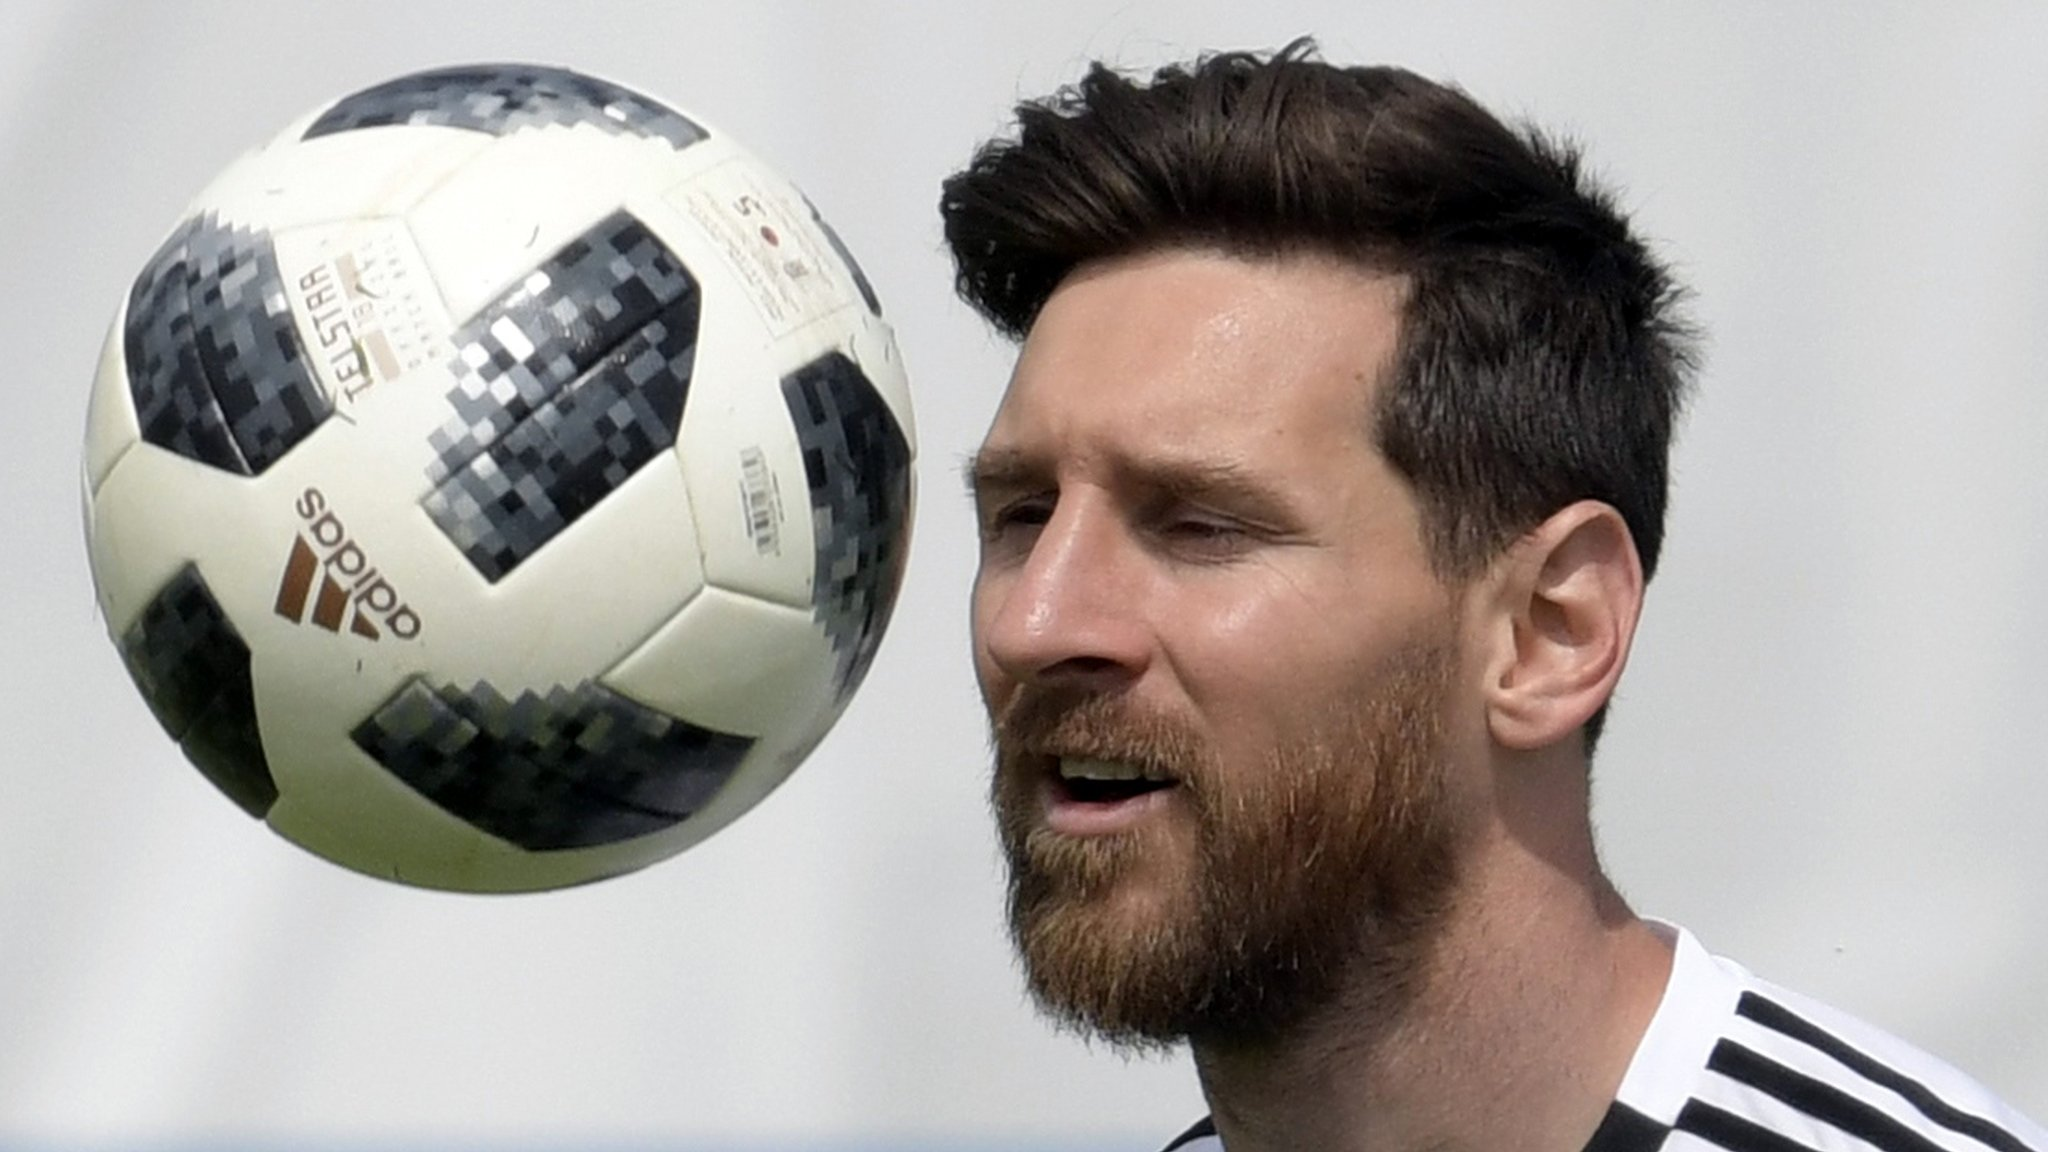 'Argentina's situation might bring best out of Messi' - Lawro's predictions for final group games